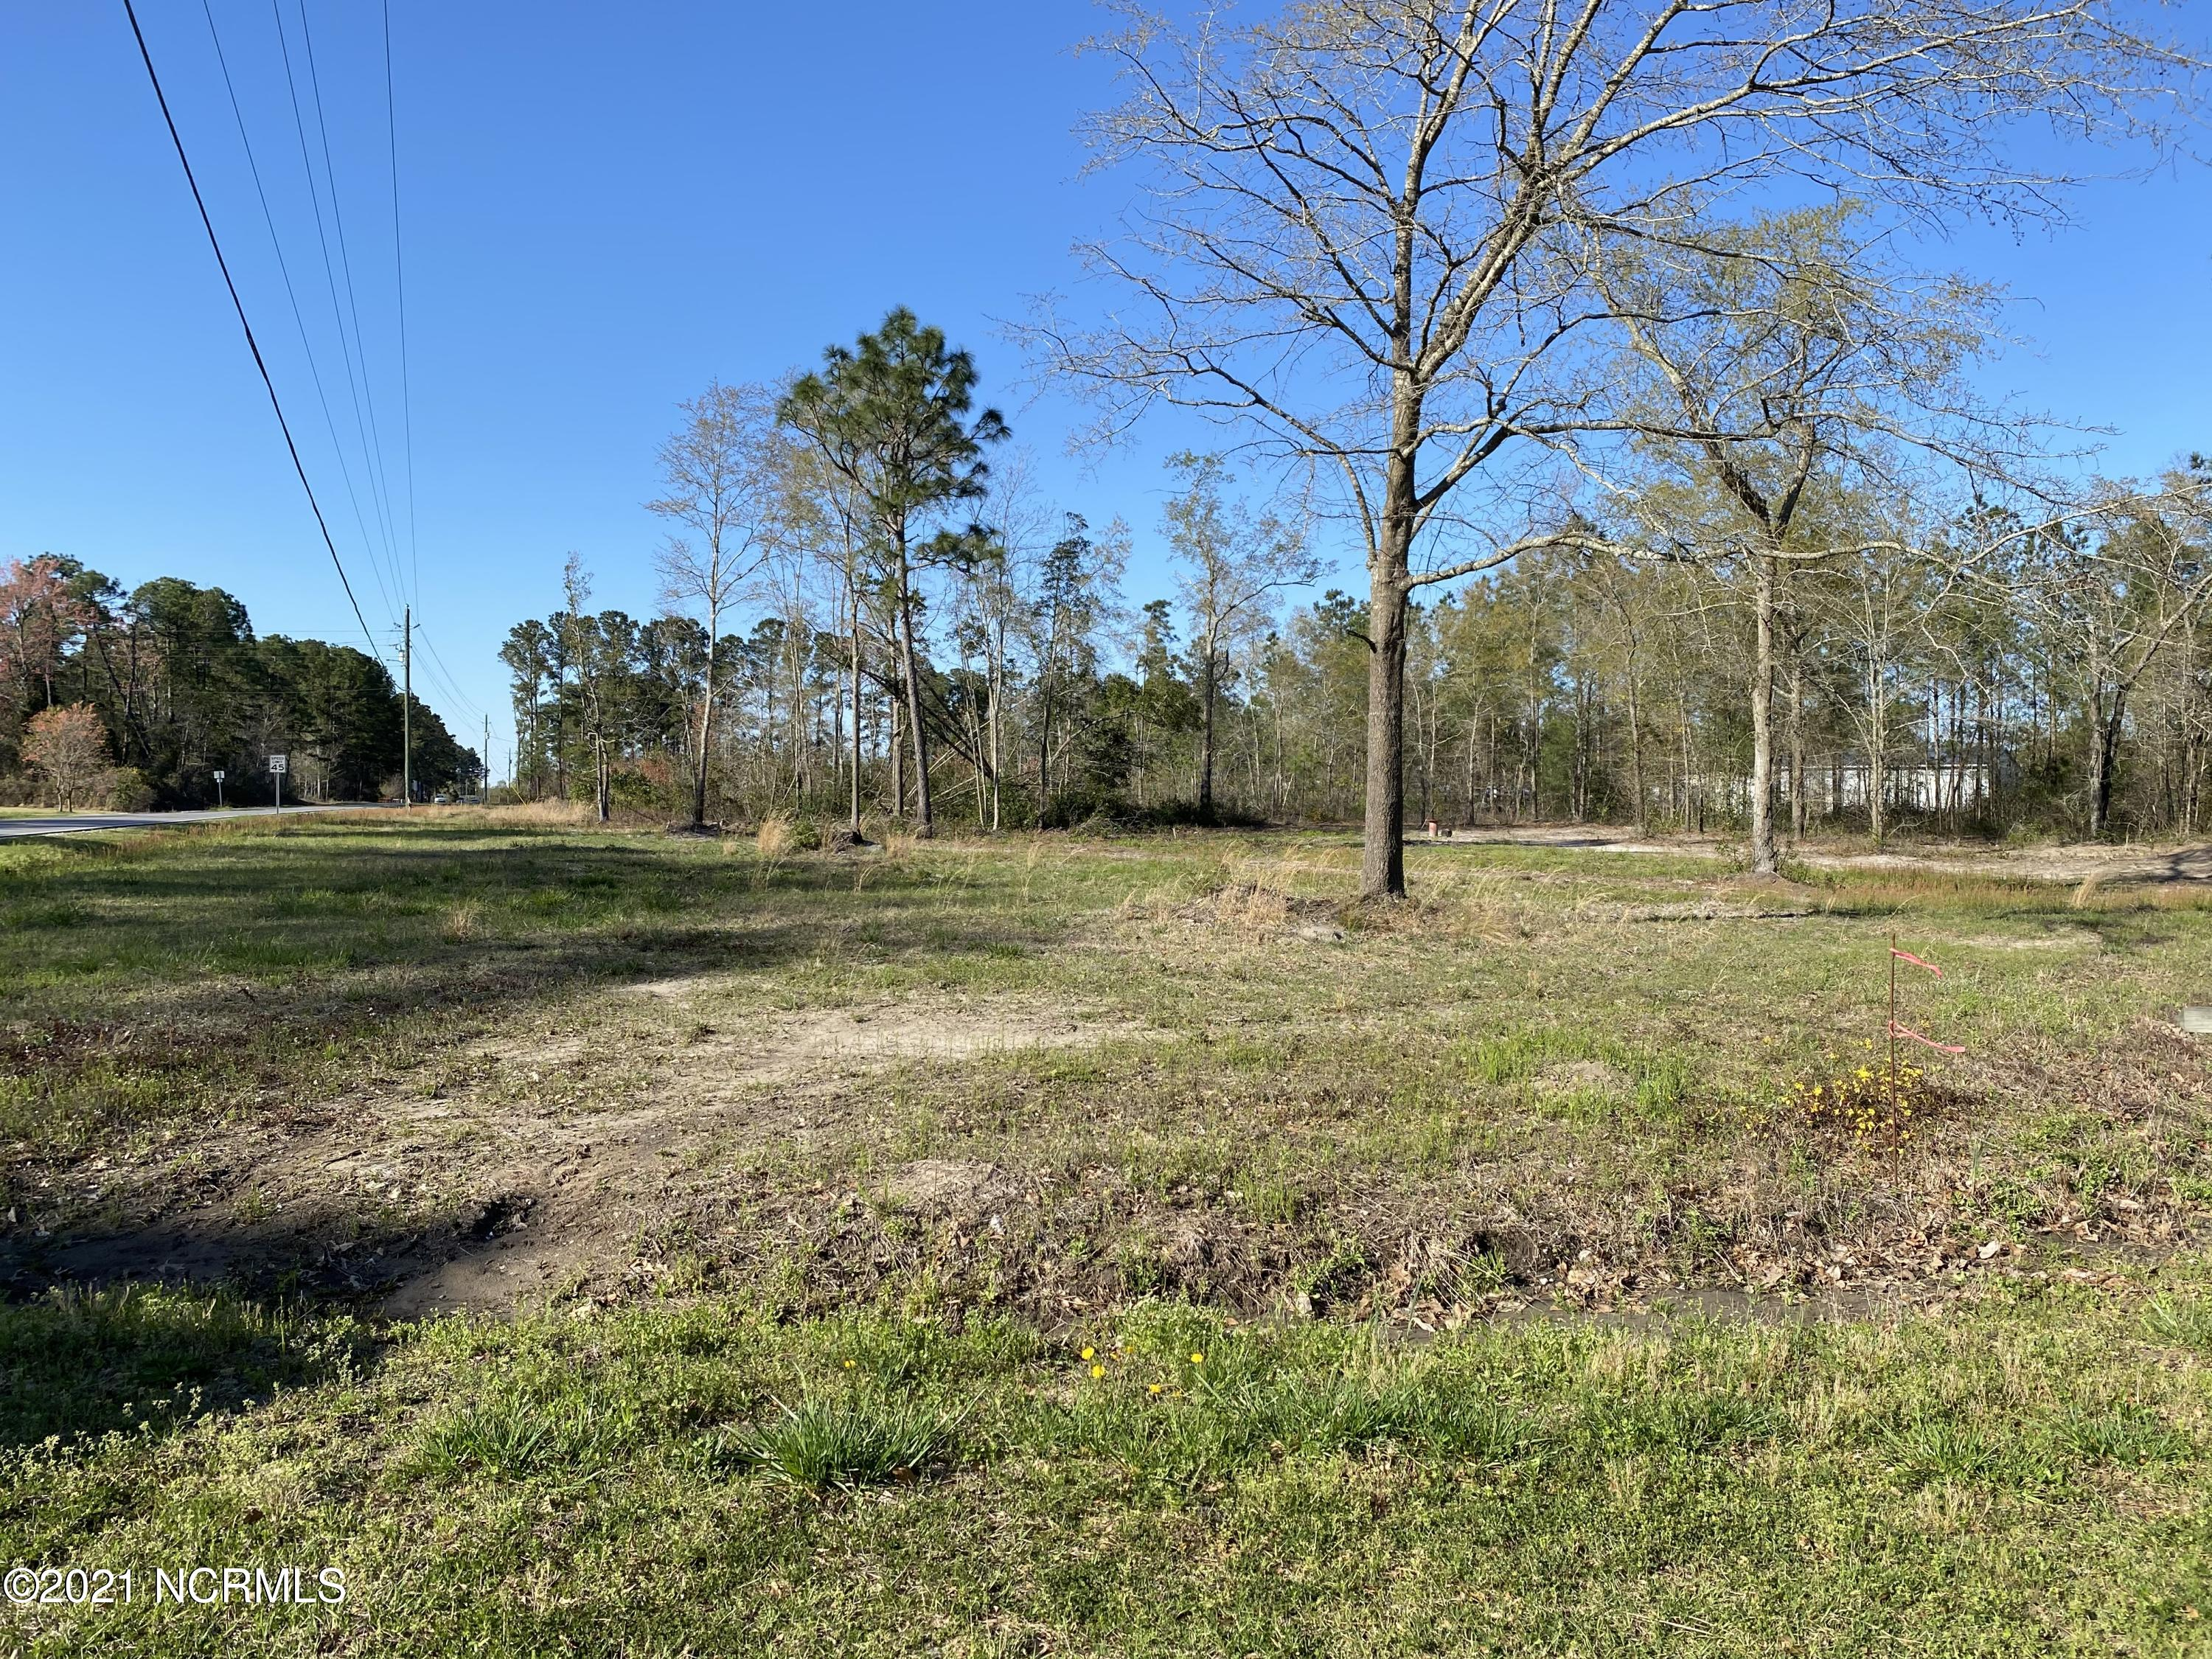 1 acre lot located on the corner of Fowler Manning Rd and Coston.